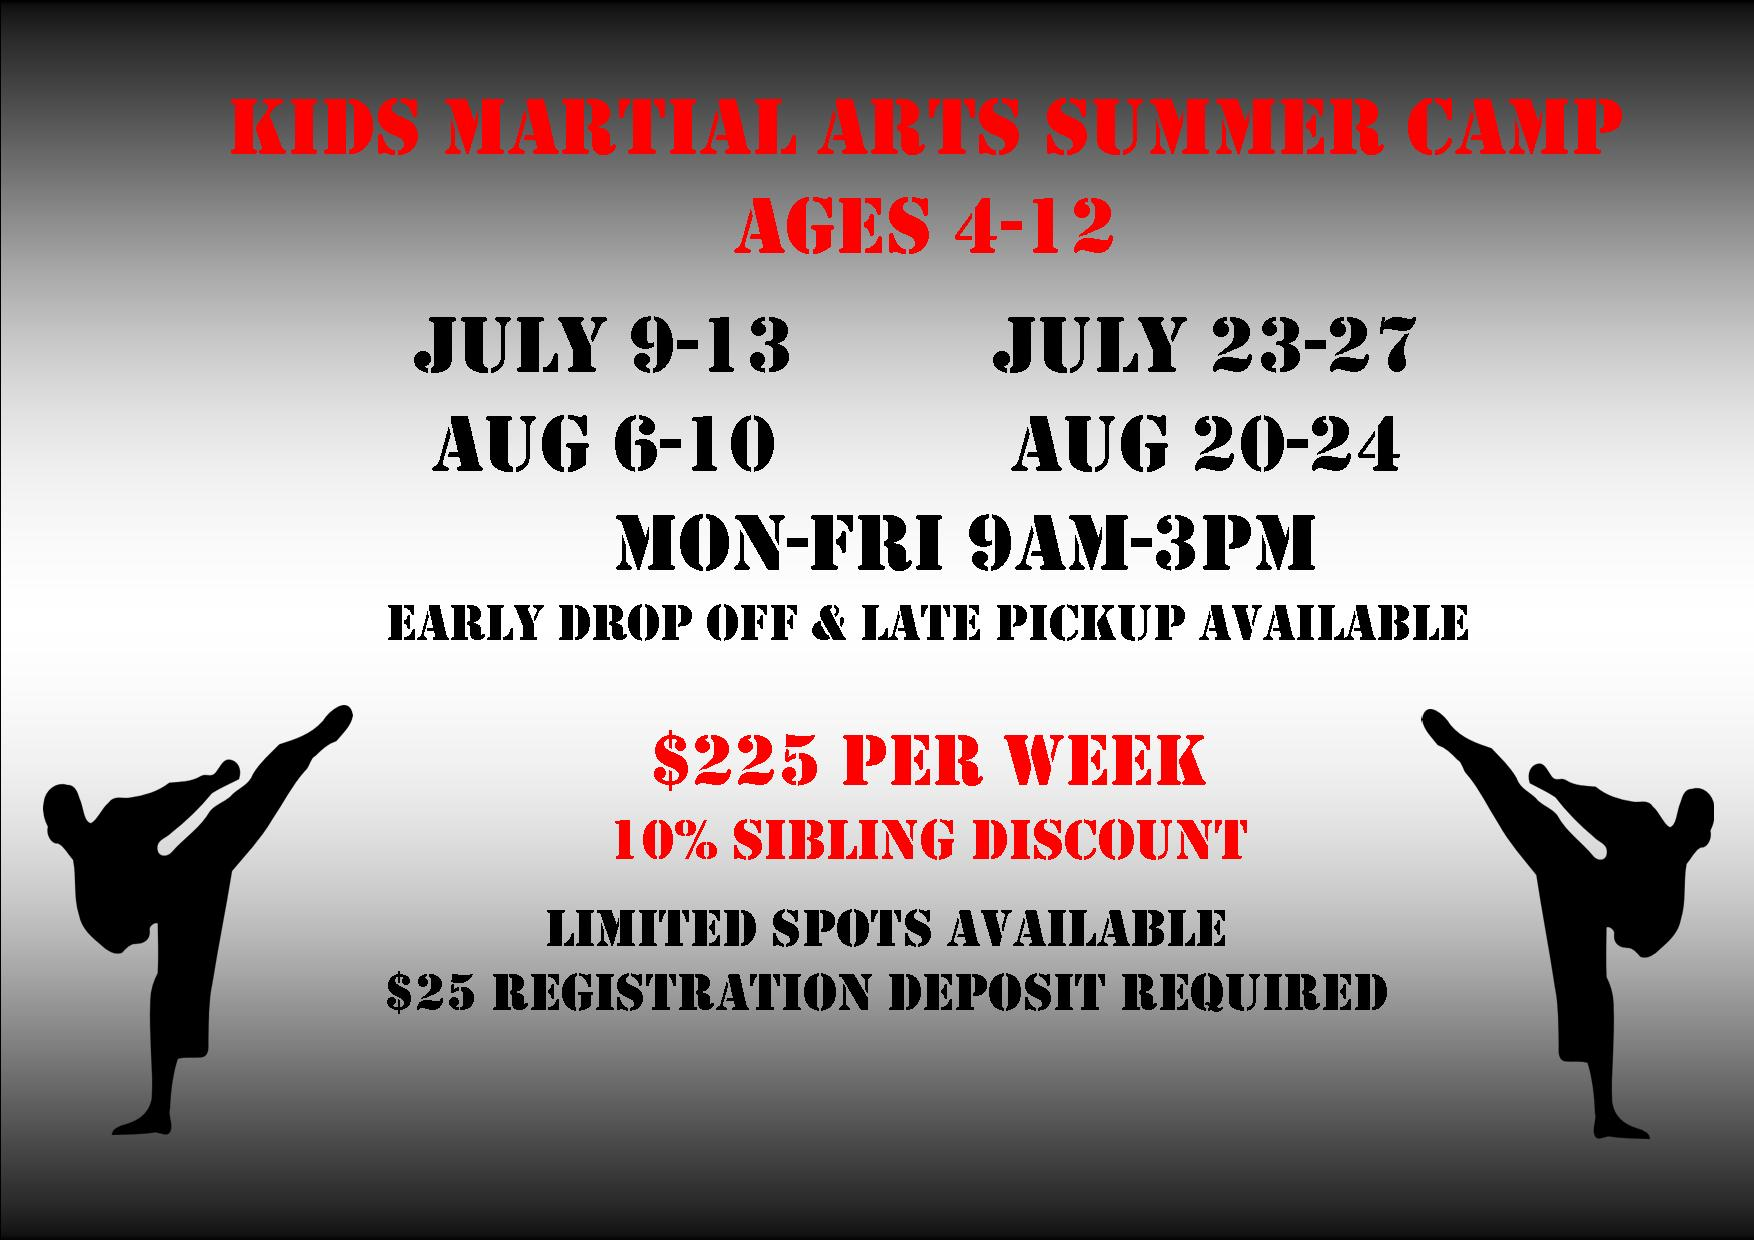 Kids martial arts summer camp